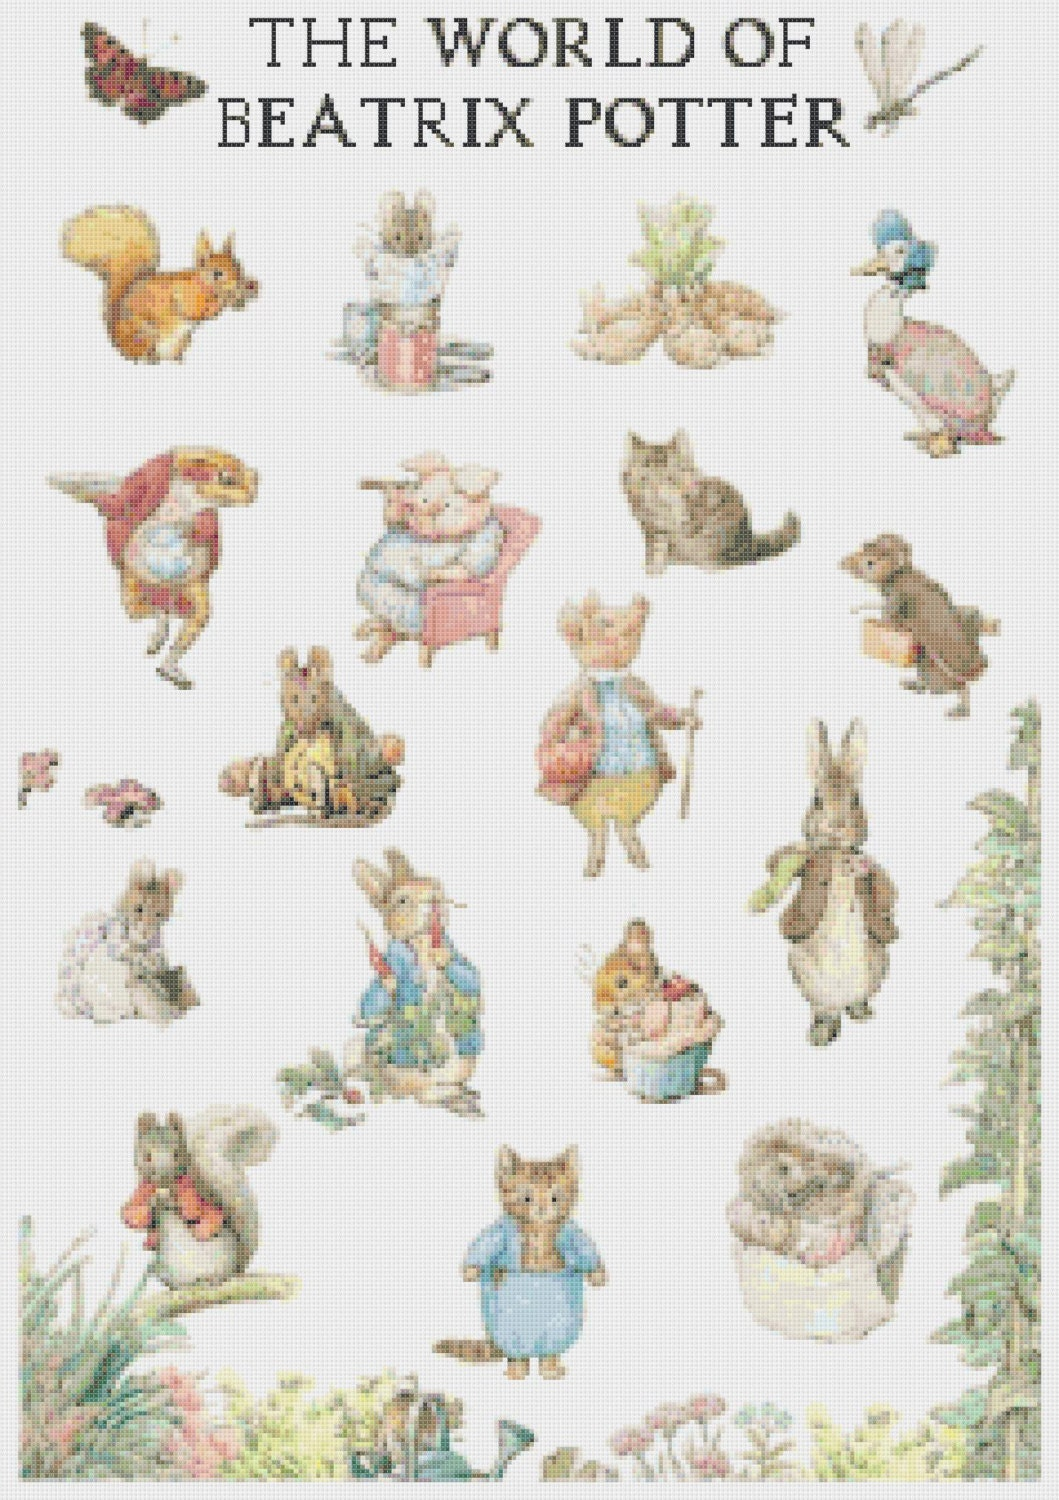 The world of beatrix potter - counted Cross Stitch Pattern chart pdf ...